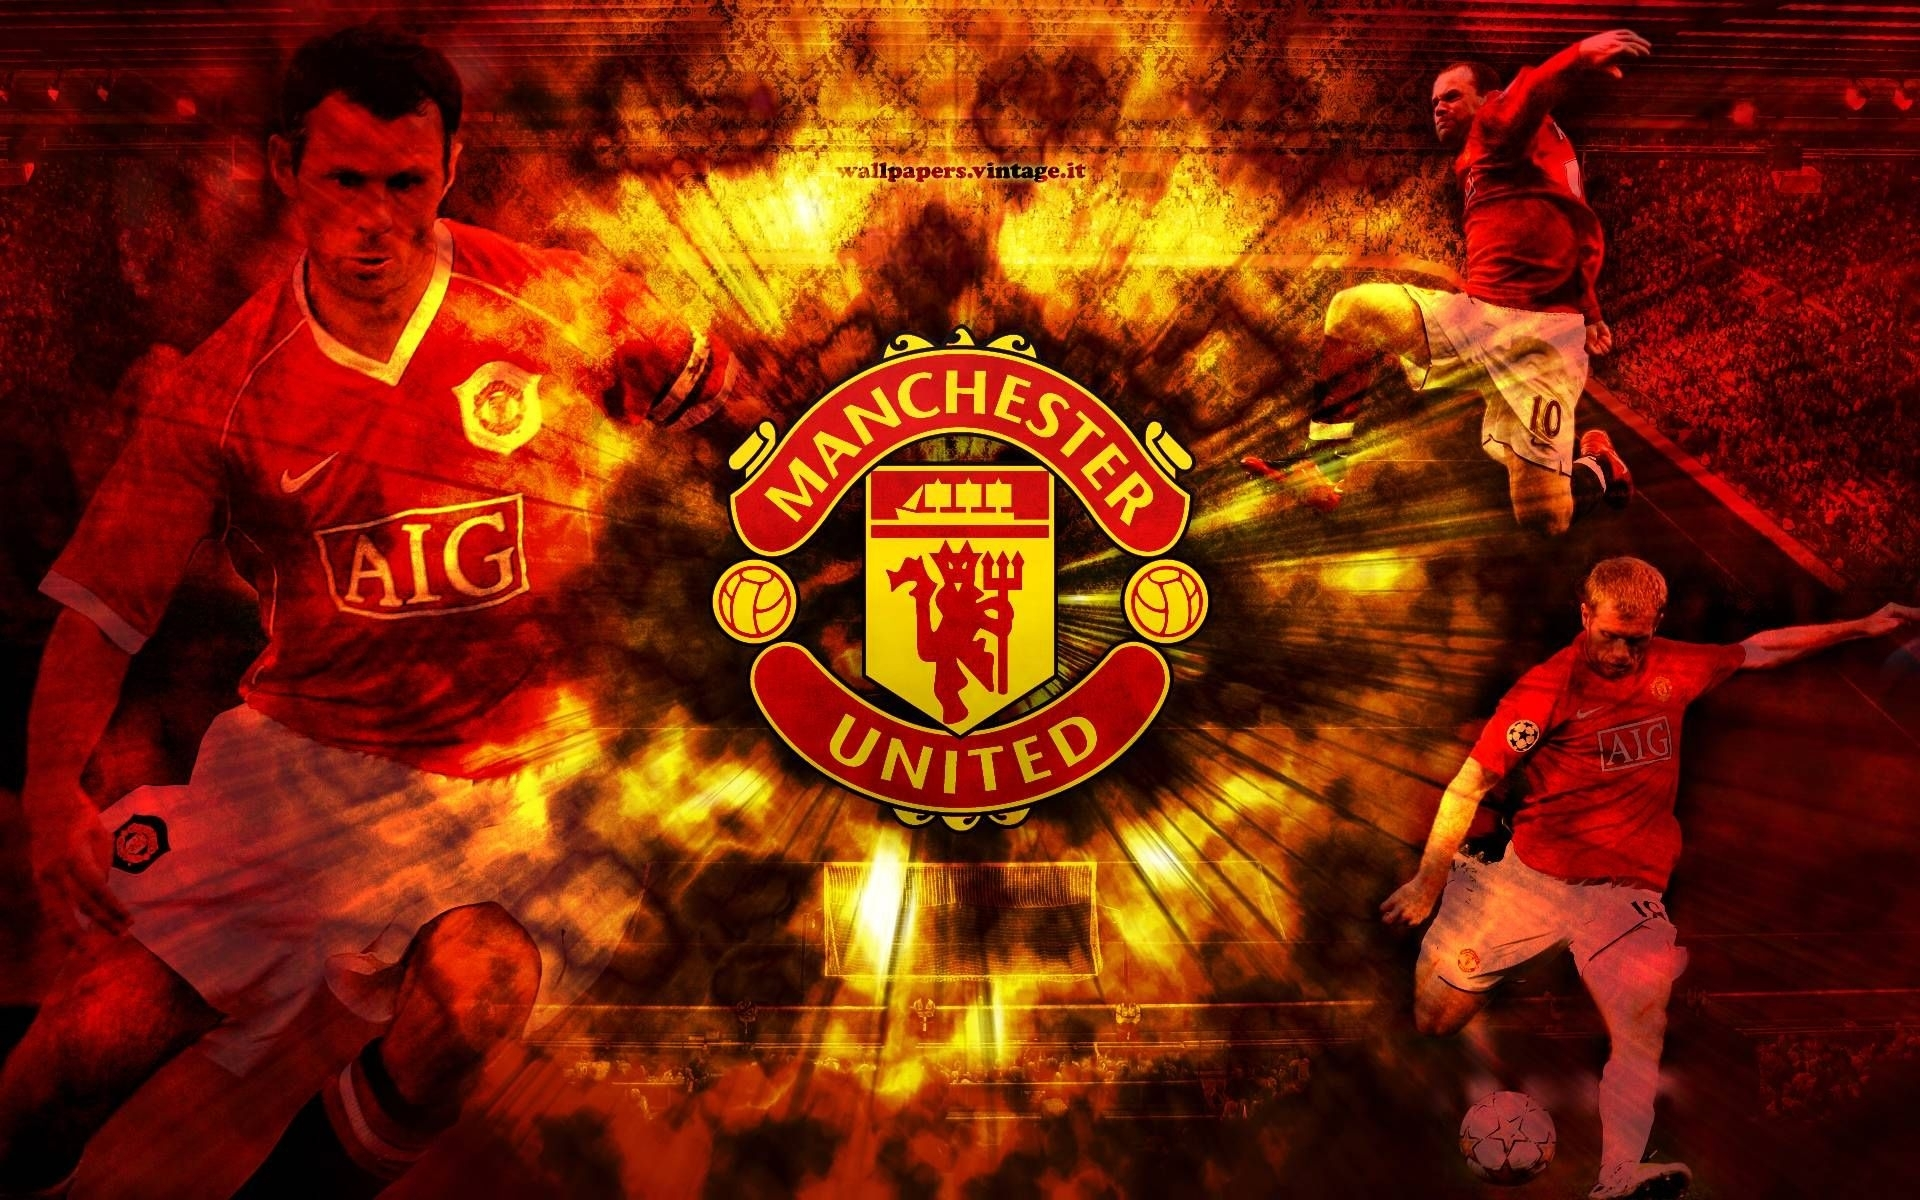 download free manchester united wallpapers for your mobile phone